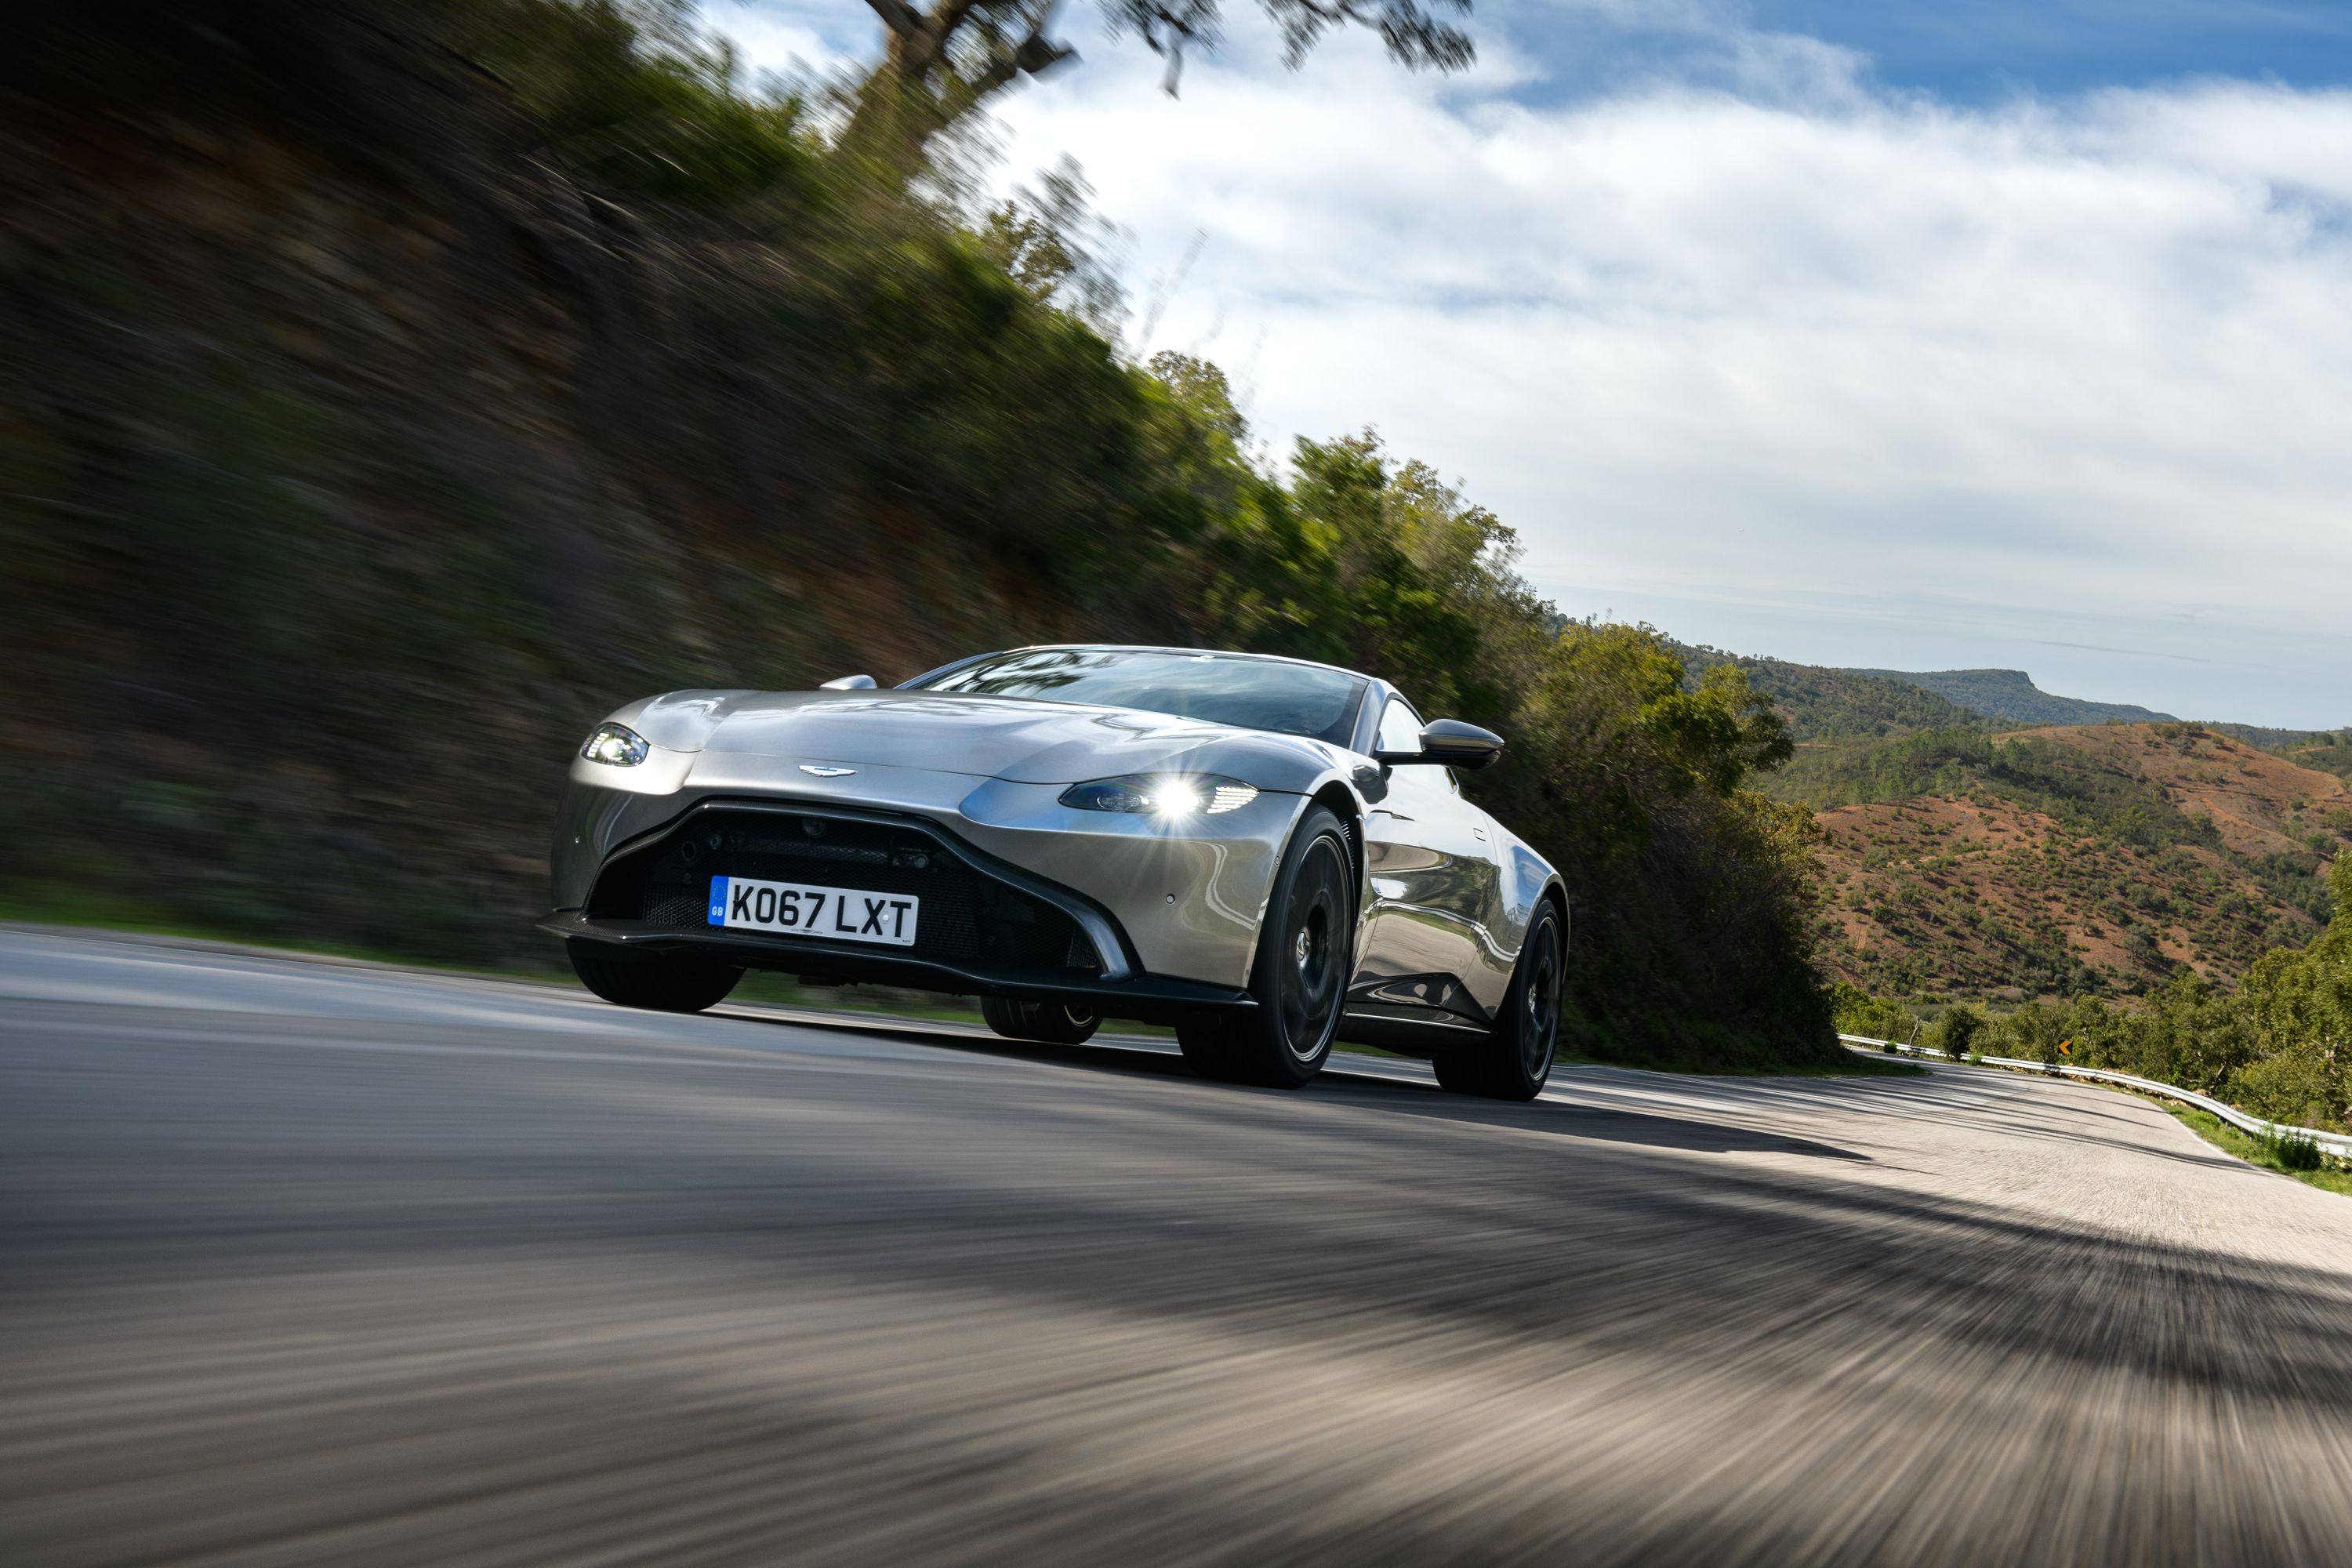 ... Aston Martin Vantage Is One Of Those Cars. Image